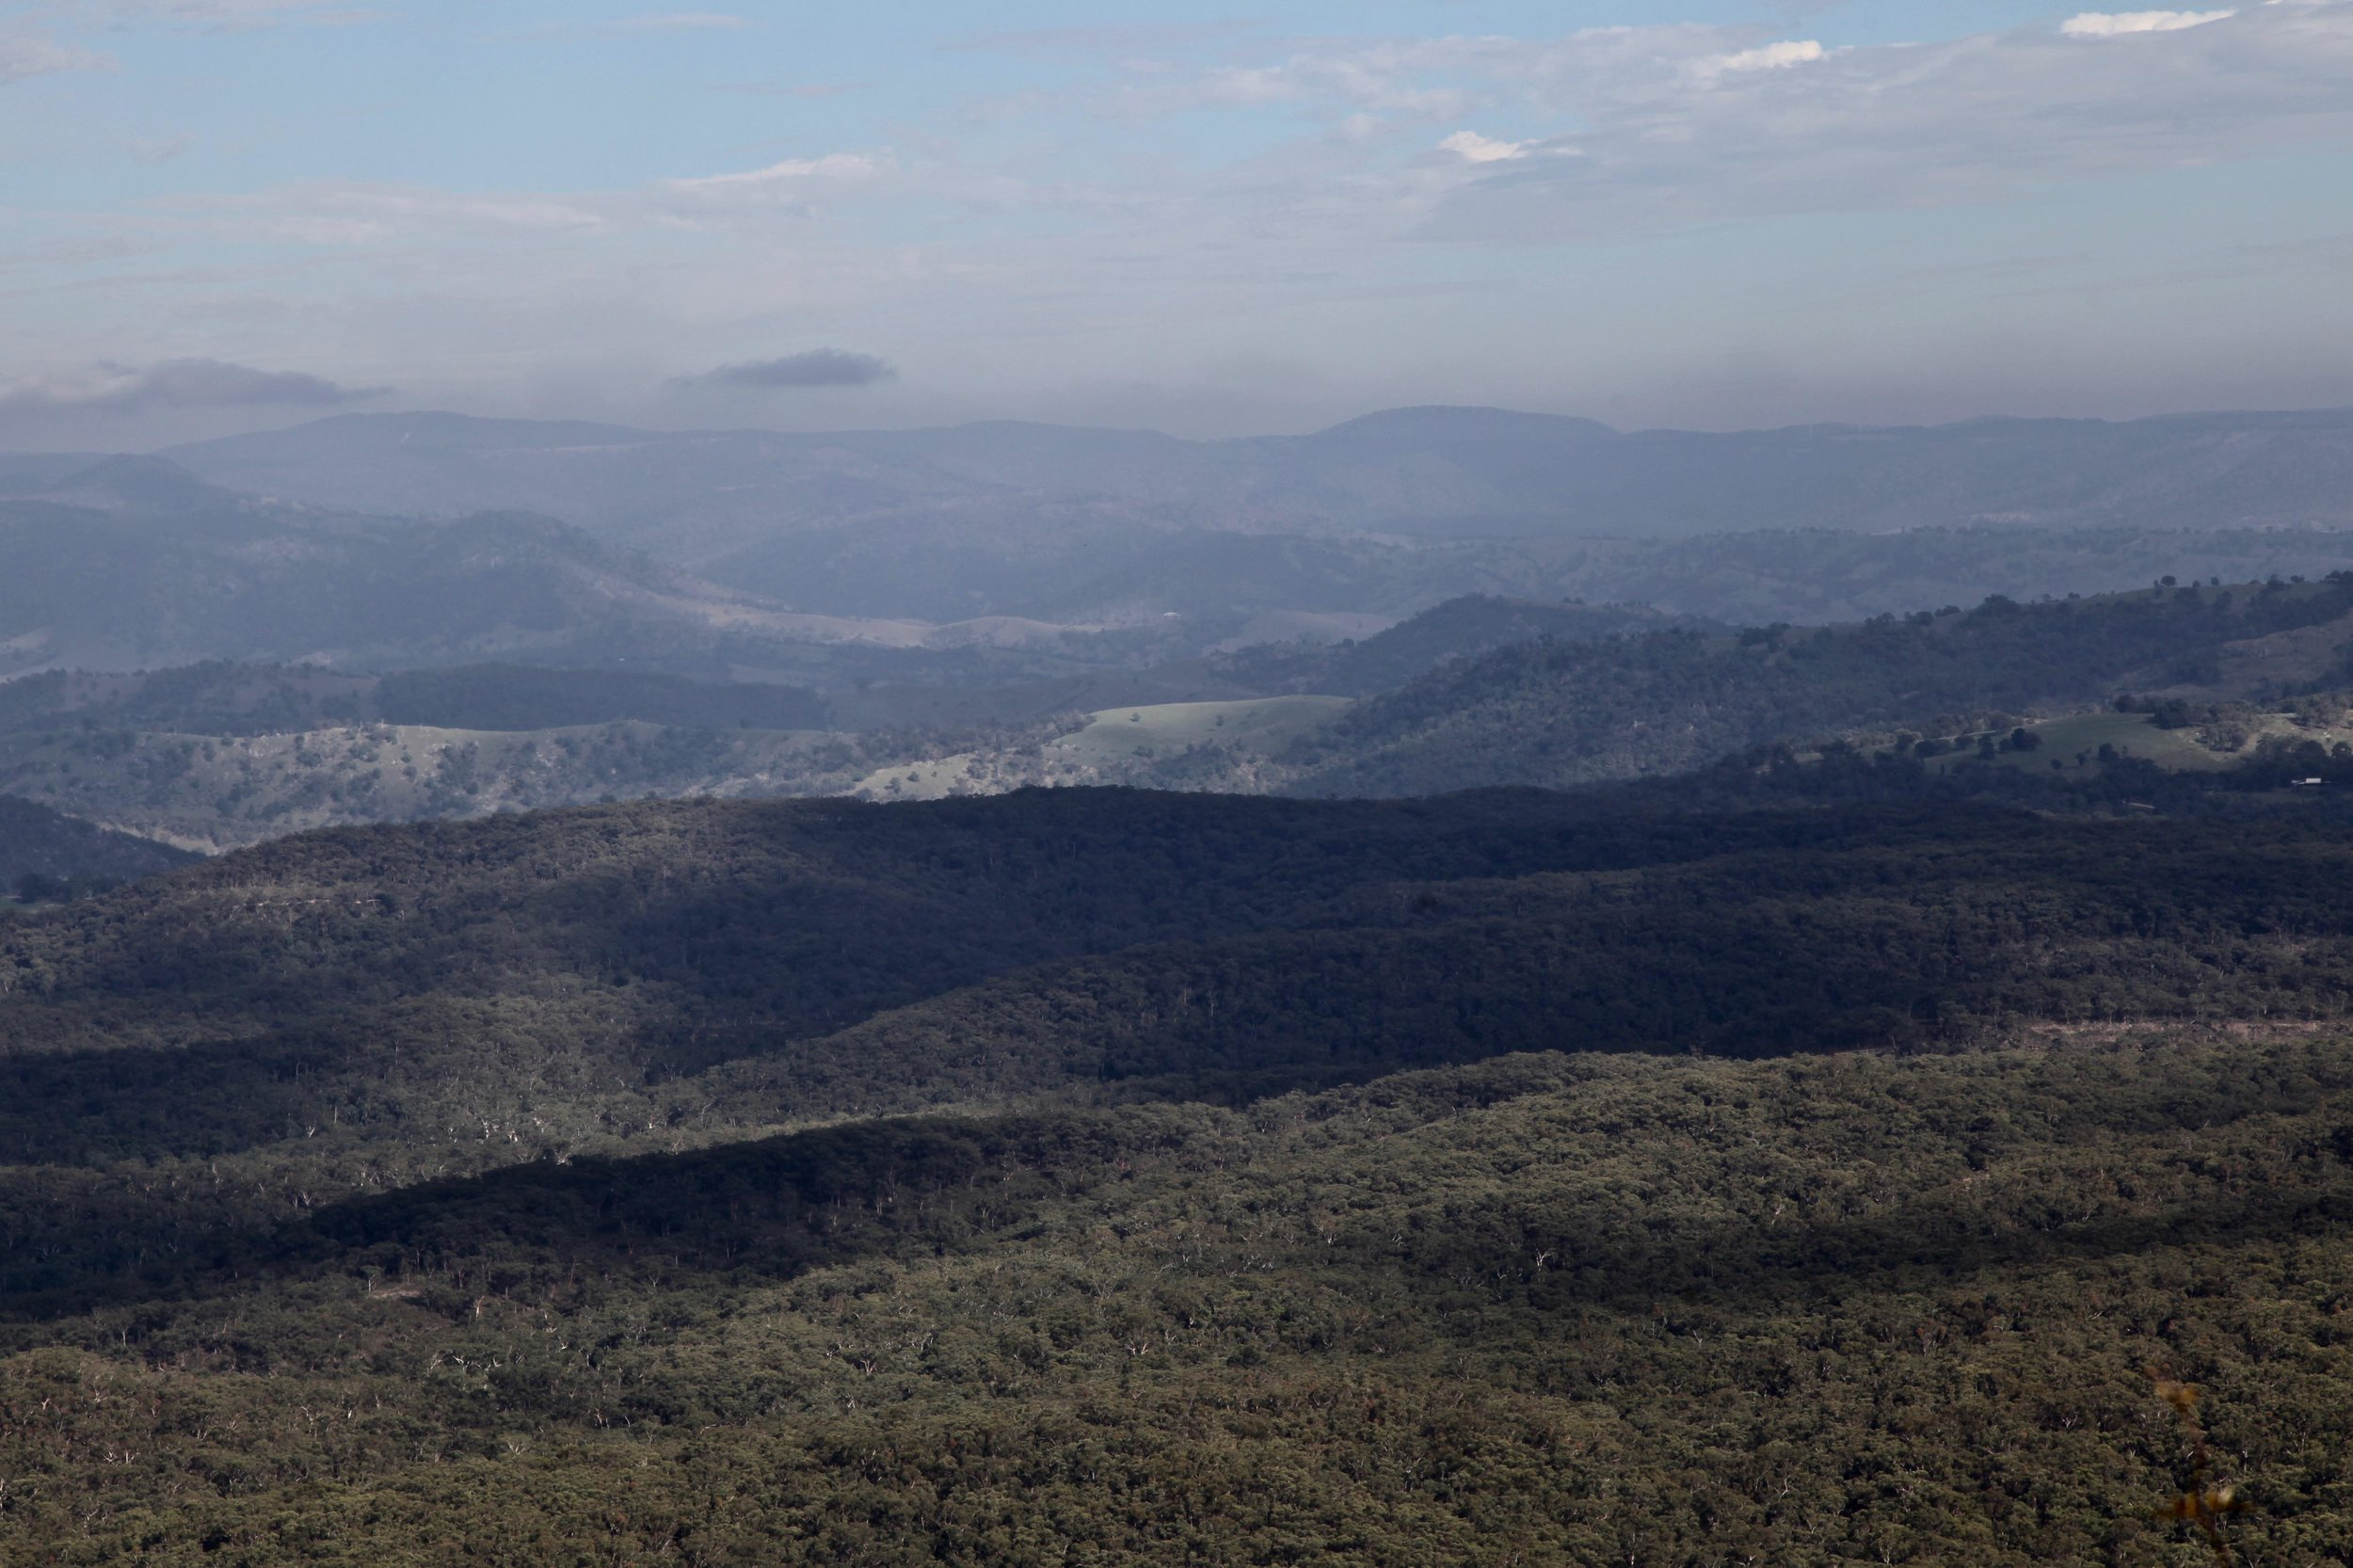 Morning light over the valley, viewed from the Narrow Neck Plateau.